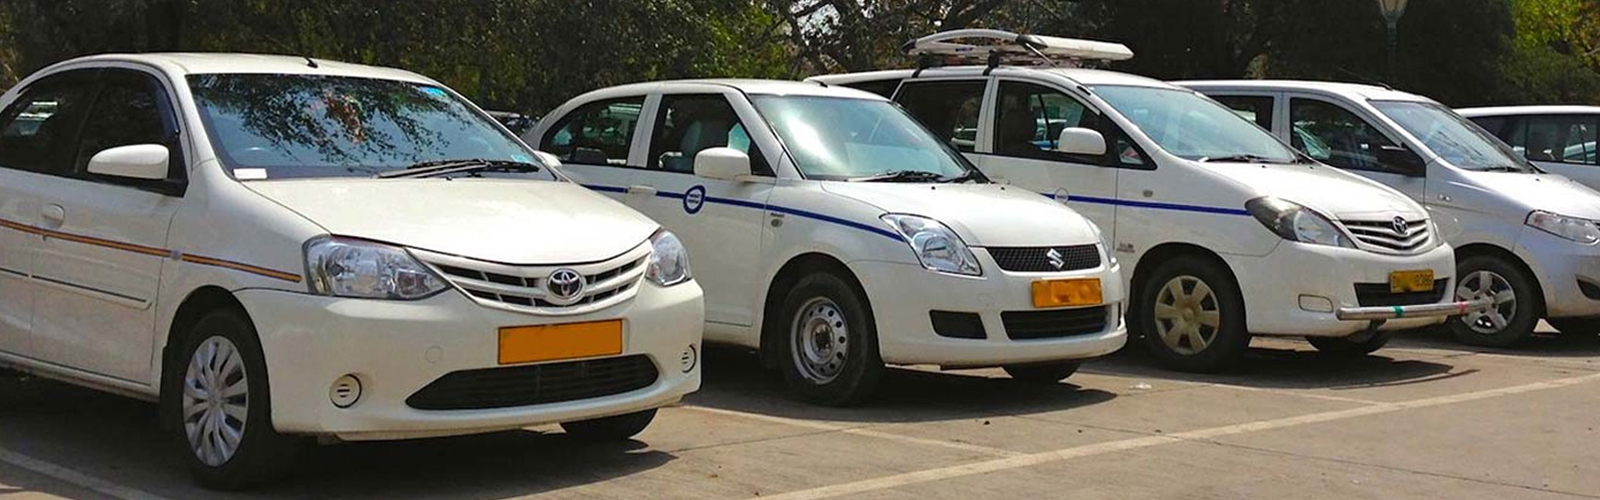 Taxi Service Chandigarh Hire Taxi In Chandigarh Best Taxi